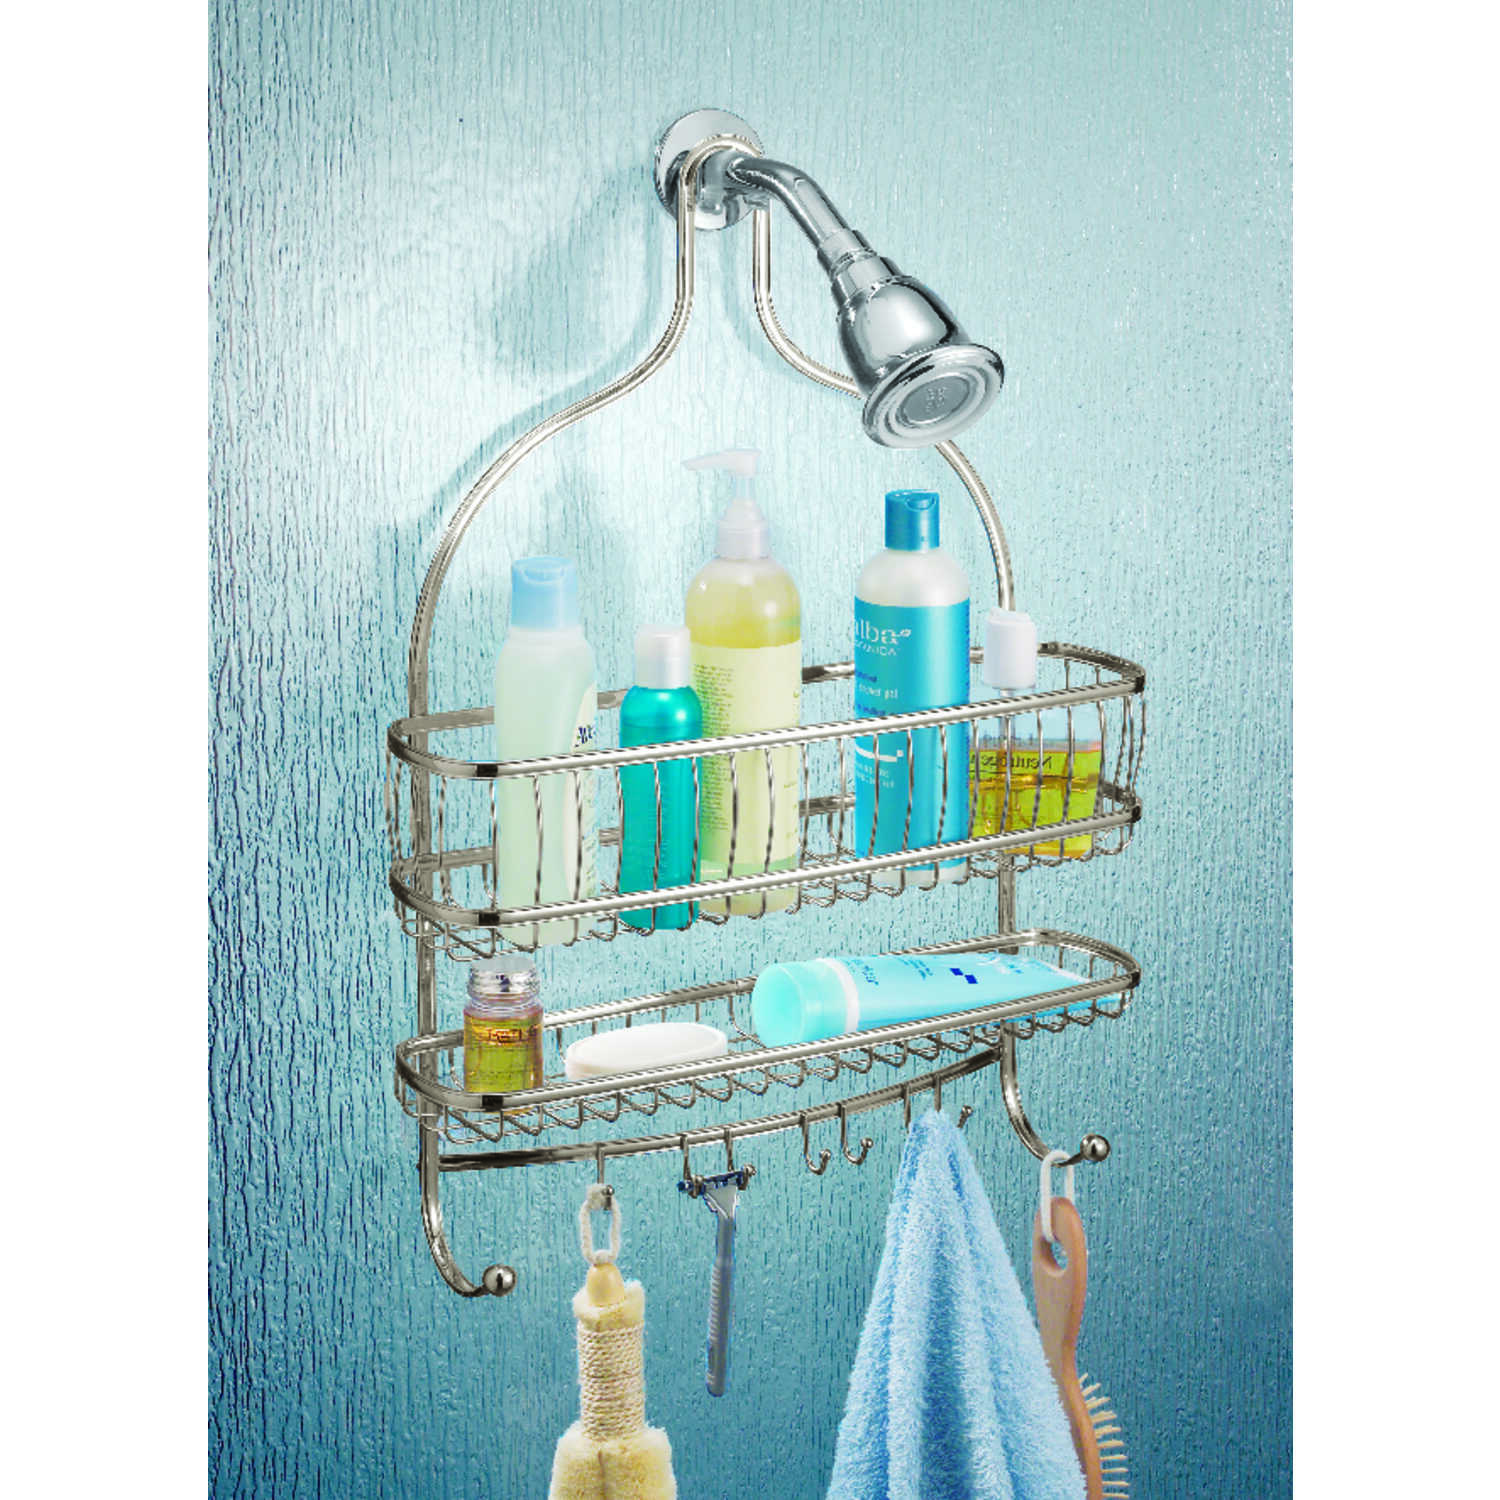 InterDesign  Shower Caddy  21 in. L x 4 in. H x 15 in. W Satin Nickel  Nickel  Stainless Steel